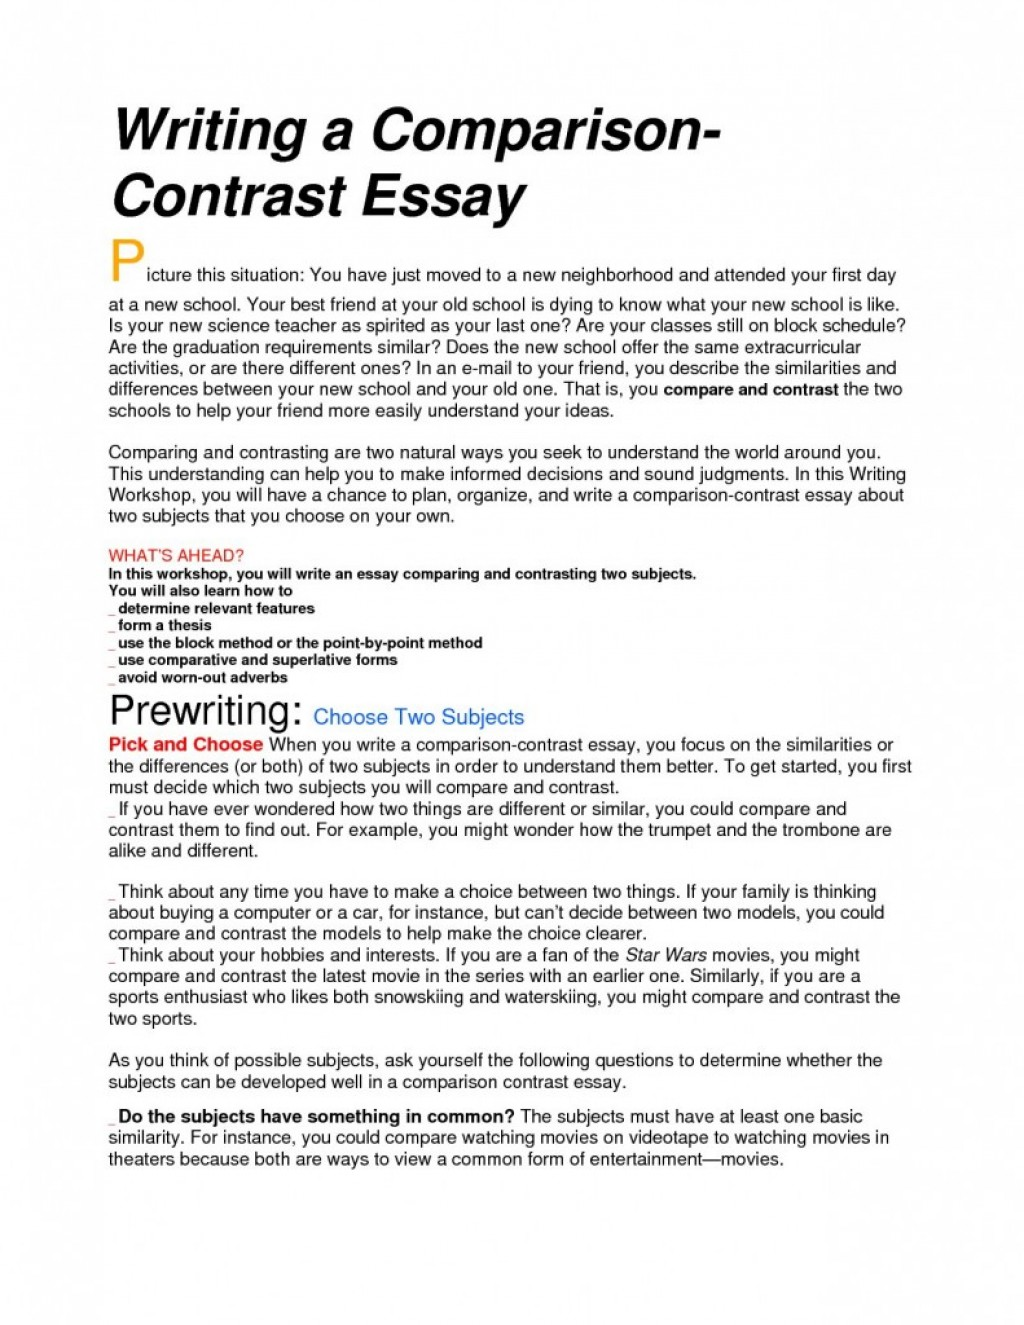 012 Essay Paperss Argumentative Topics For High School Funny College Stu Creative Students Sample Compare And Contrast Sensational Examples Large